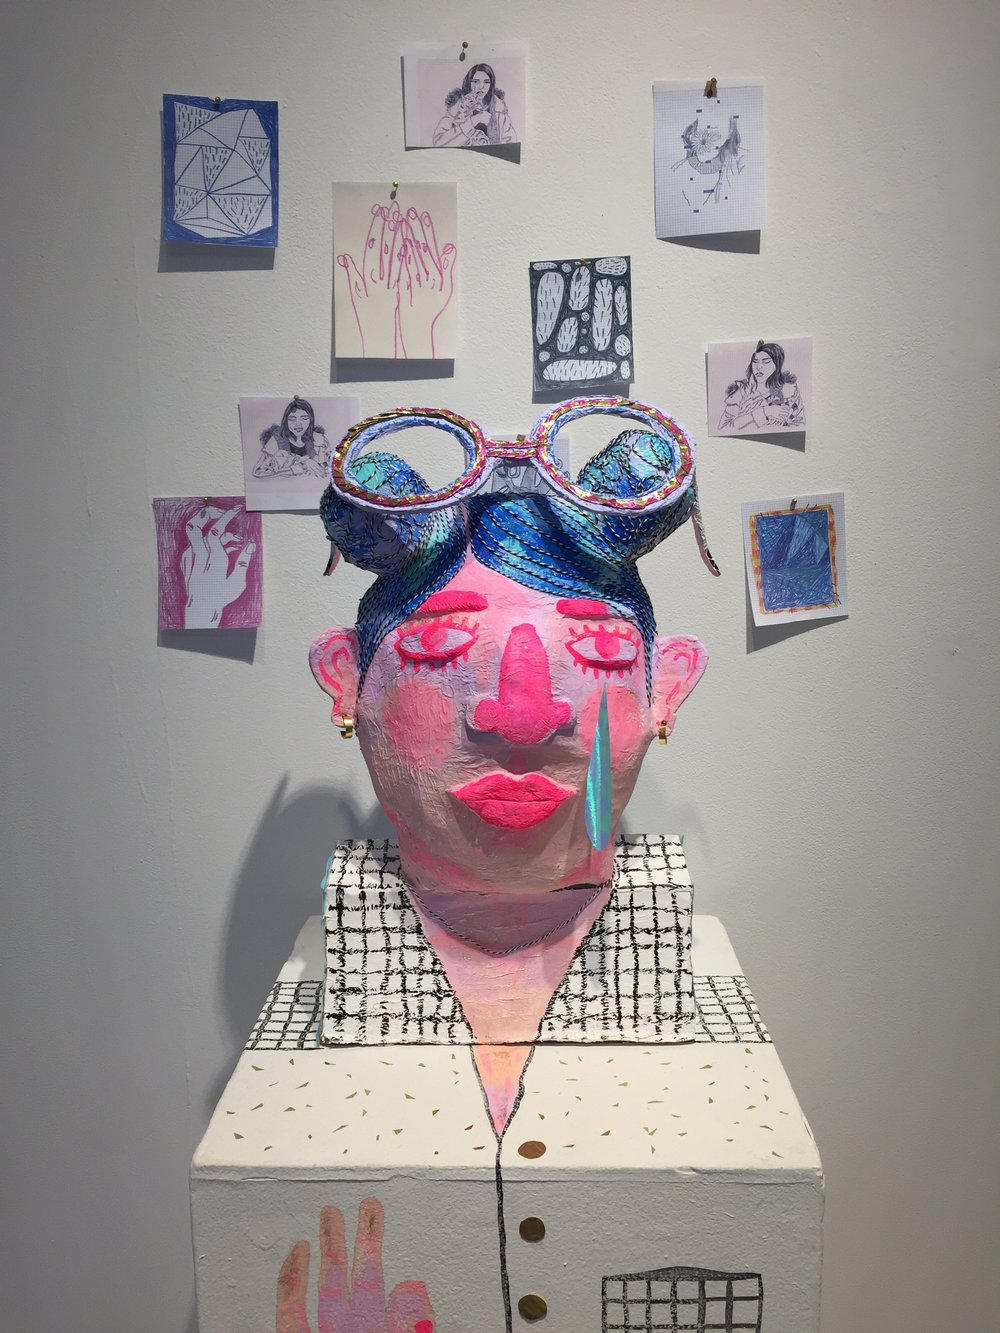 Aditi Damle's first paper mache sculpture, exhibited in ILP's Image Harvest show in fall 2016.